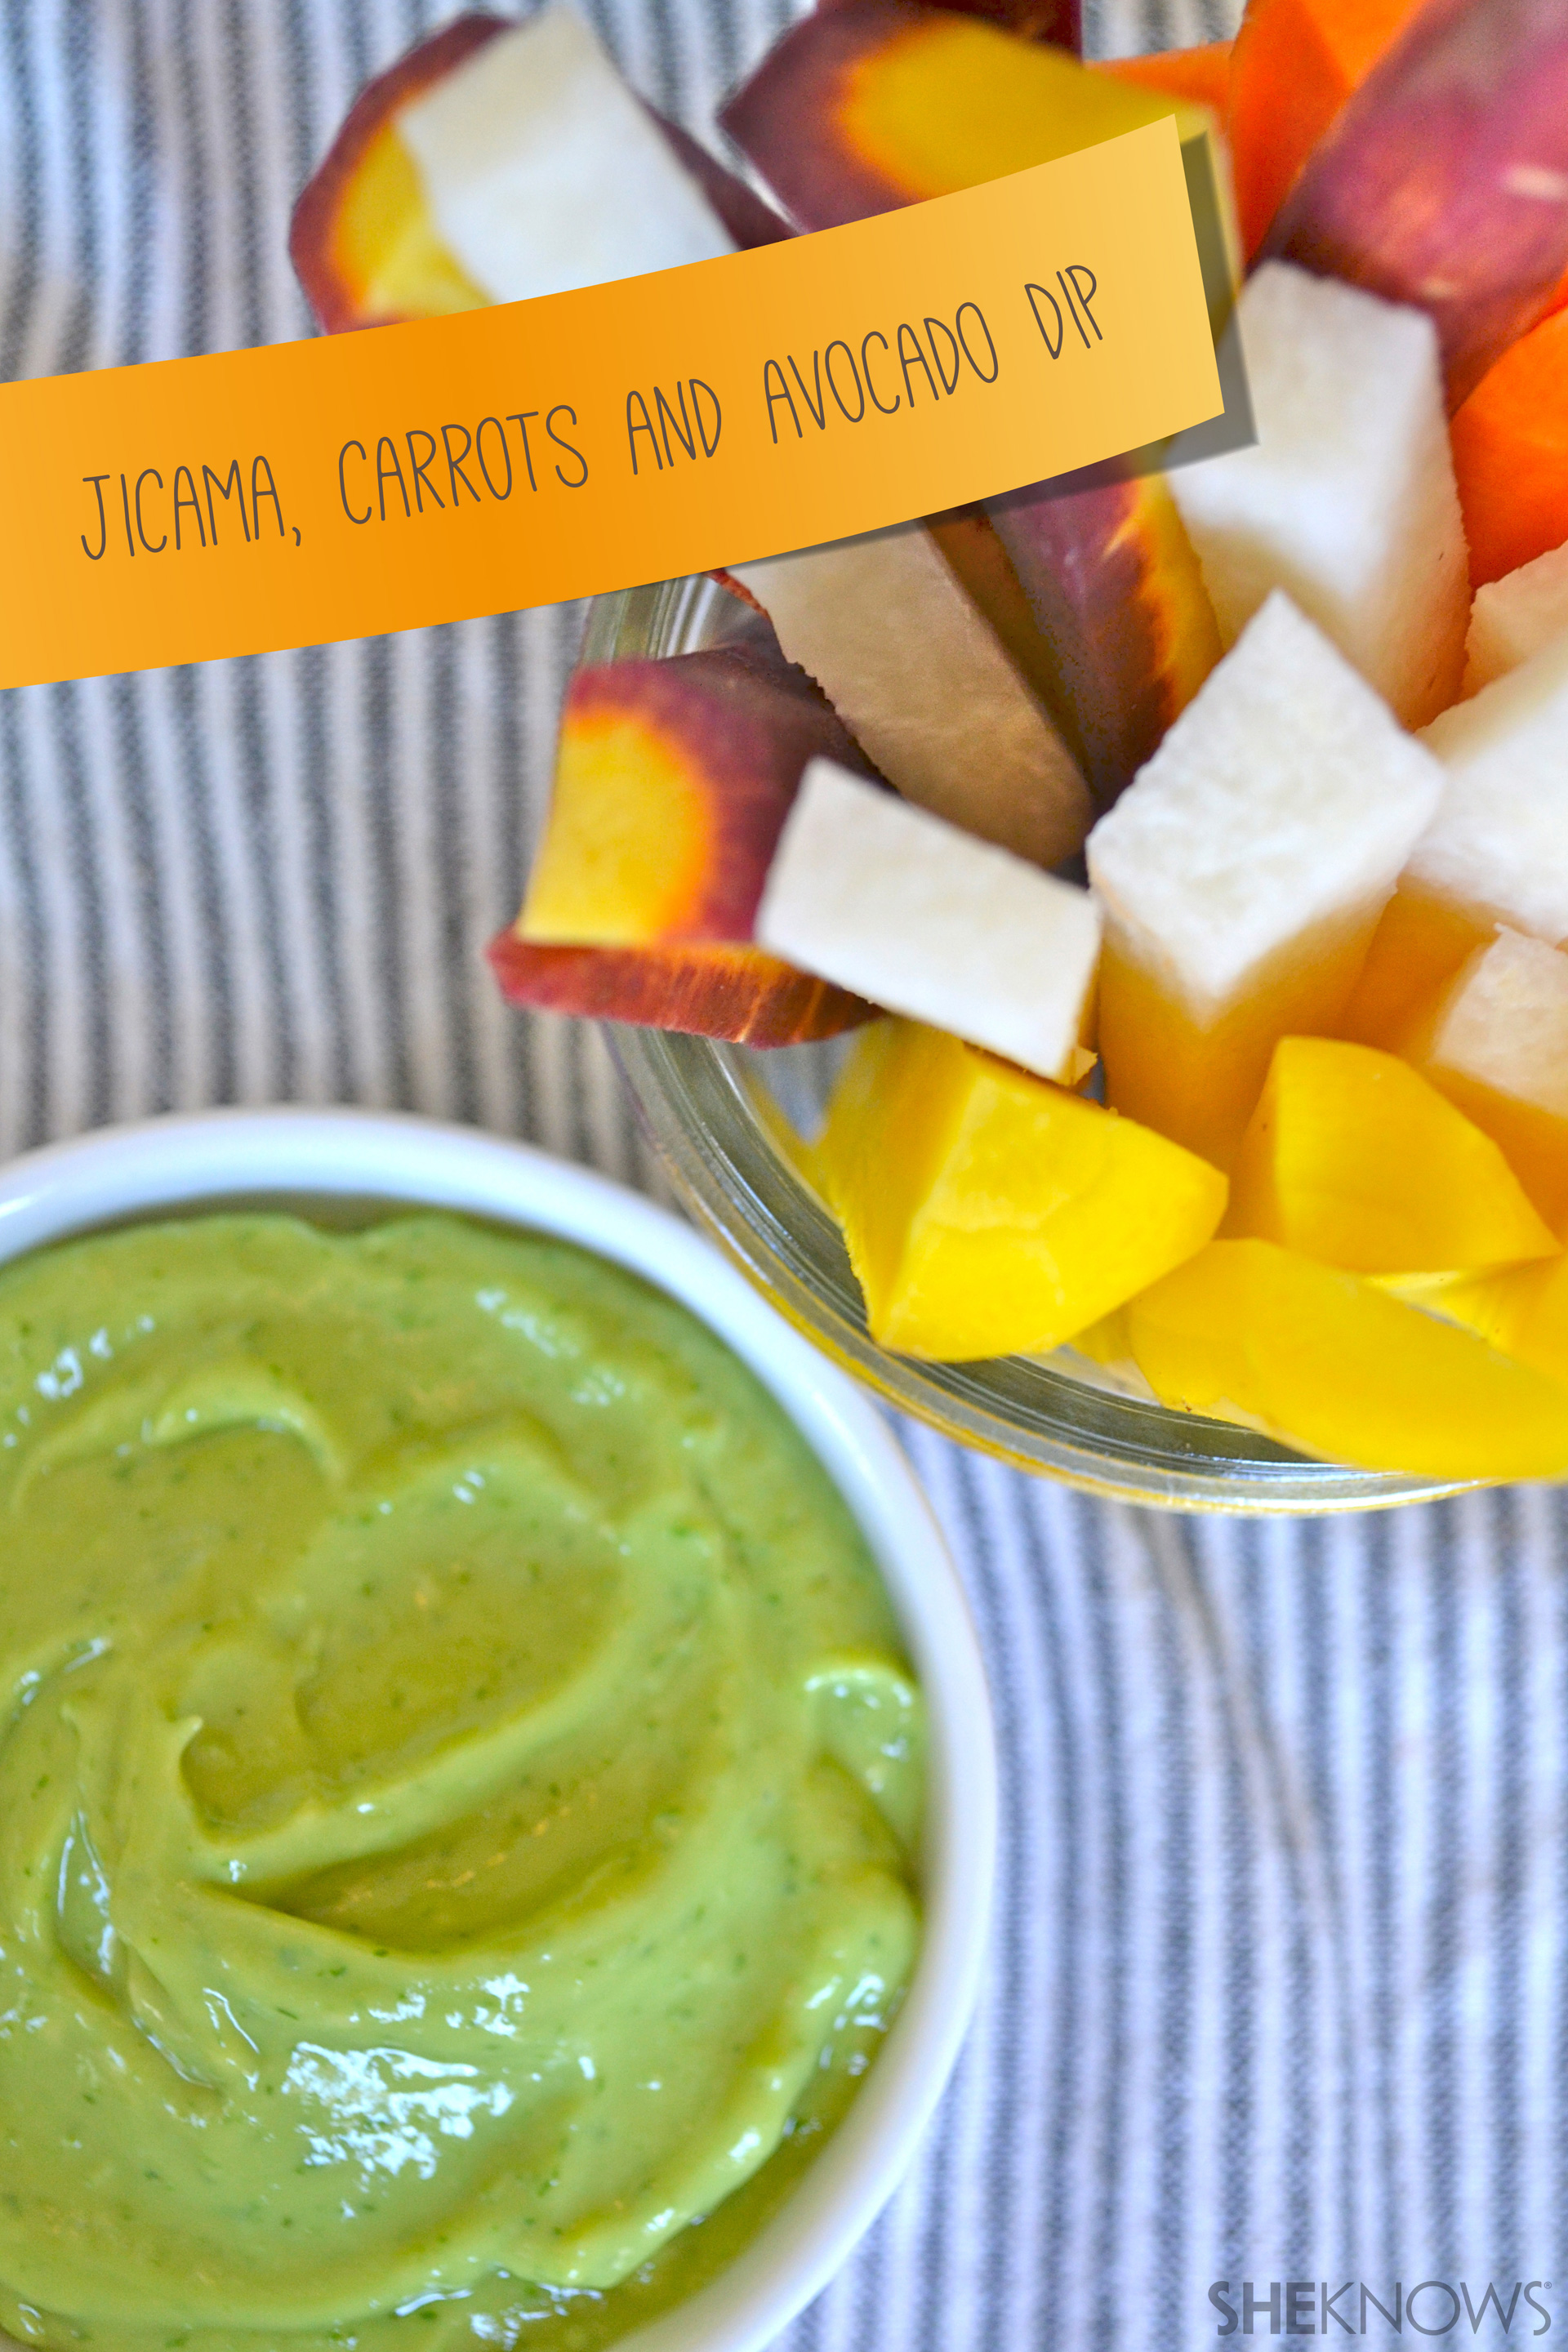 Jicama, Carrots and Avocado Dip